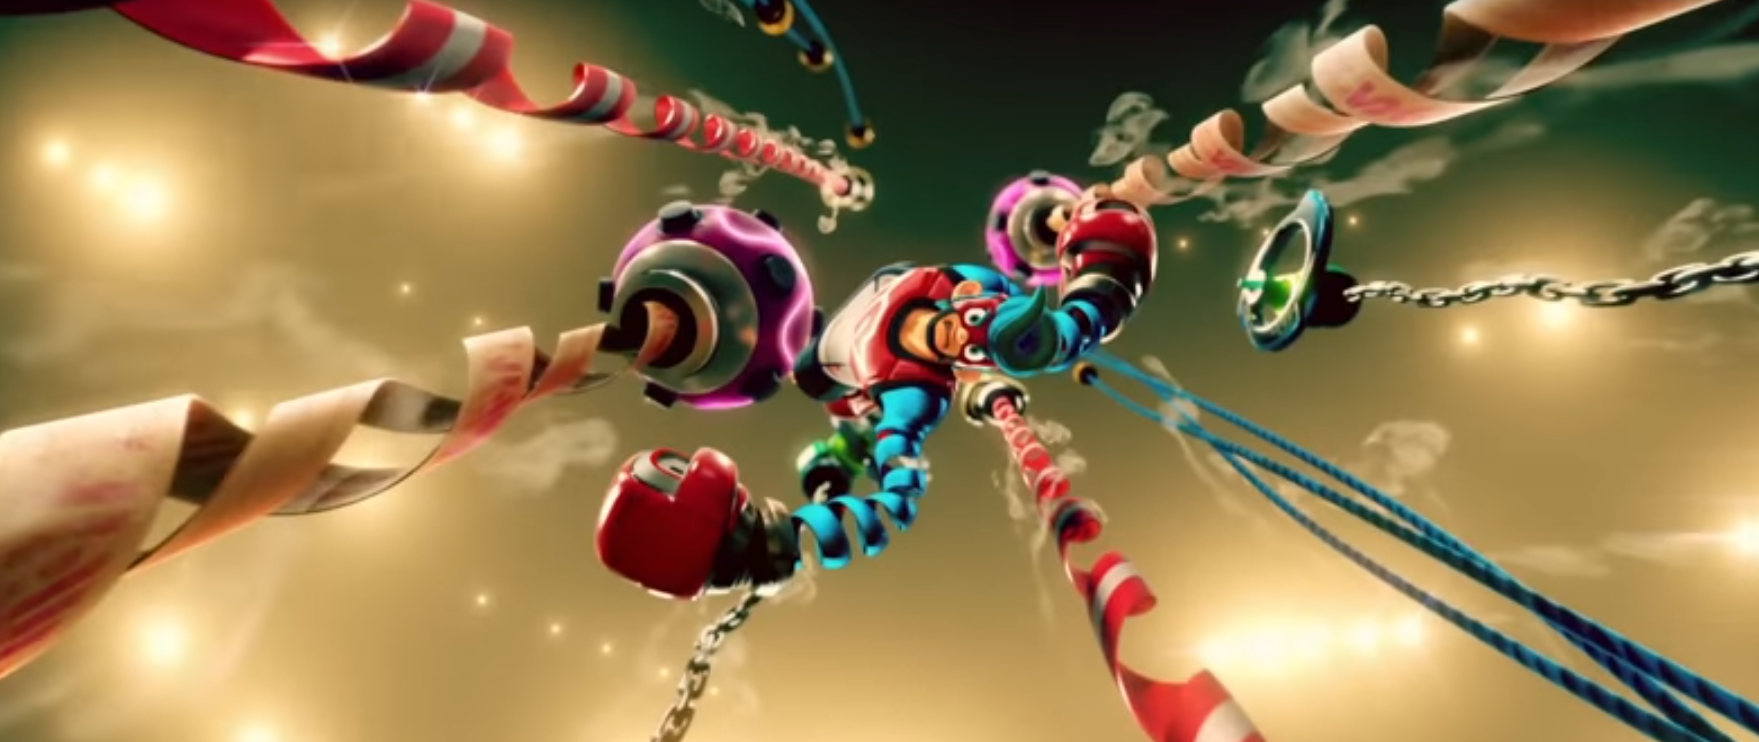 New Nintendo Game Arms Coming To The Switch Rocket Chainsaw